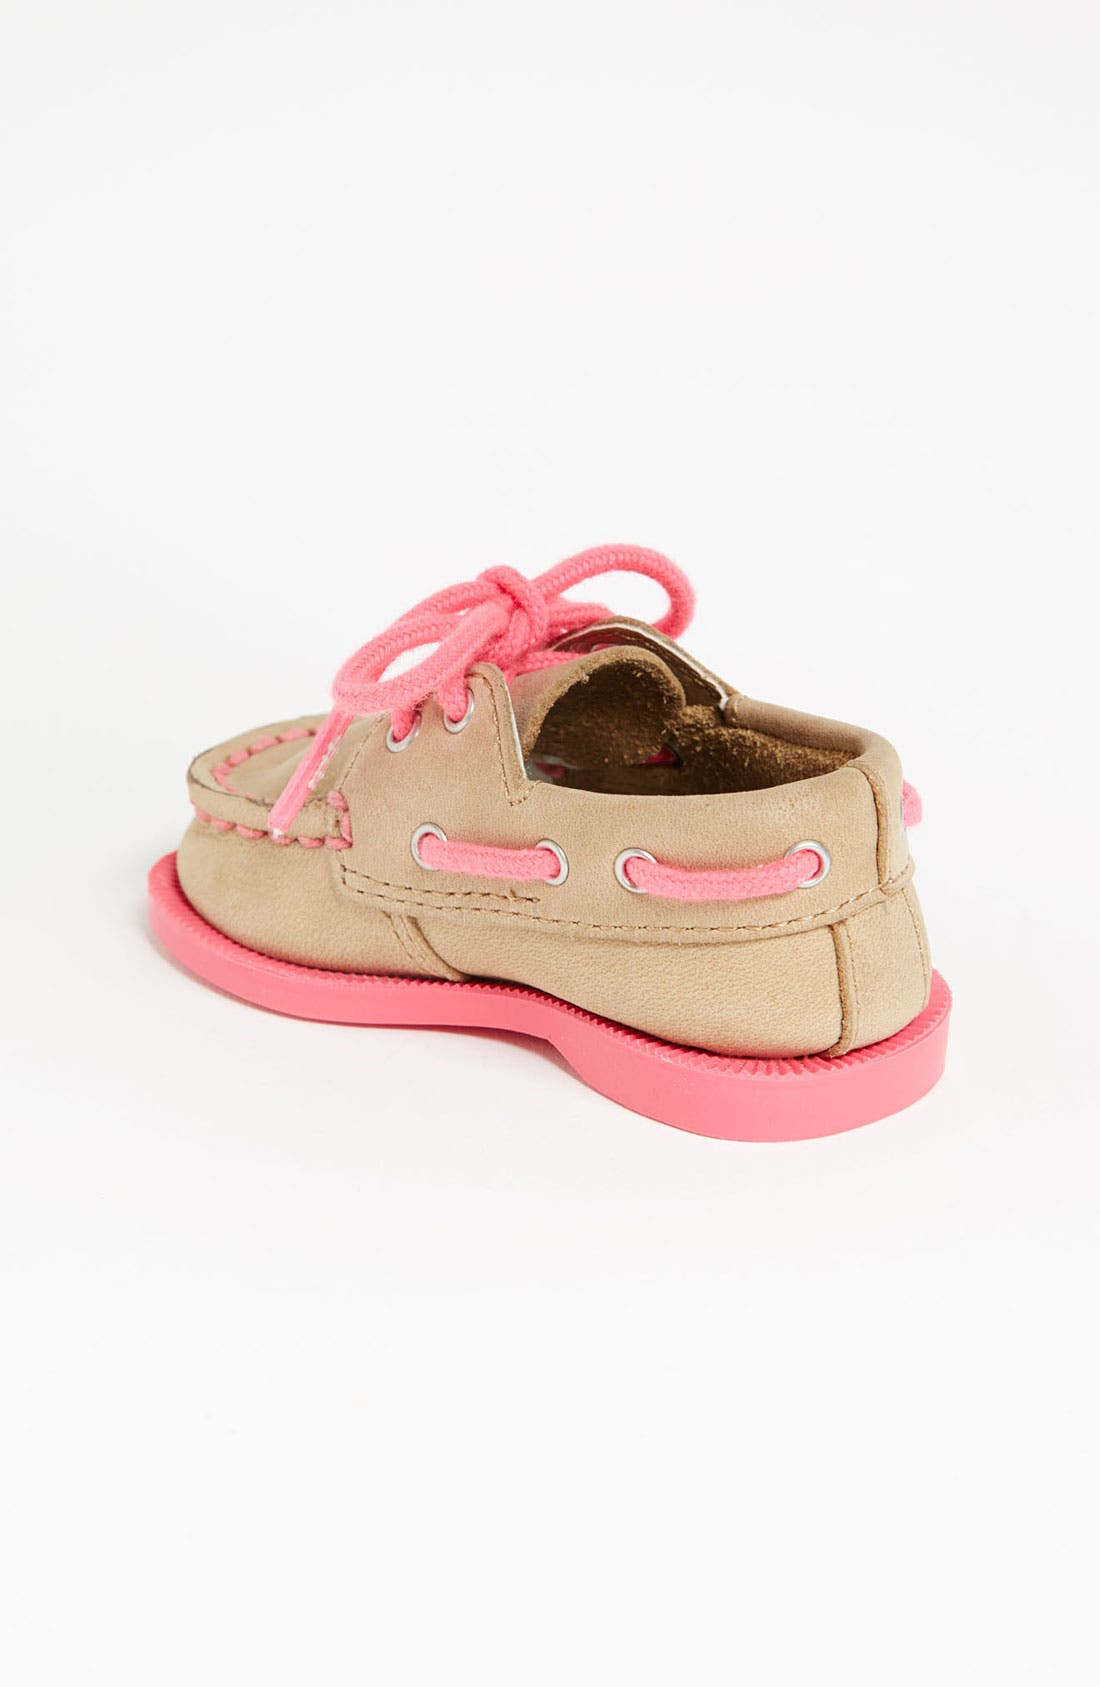 Sperry Top-Sider<sup>®</sup> Kids 'Authentic Original' Crib Shoe,                             Alternate thumbnail 3, color,